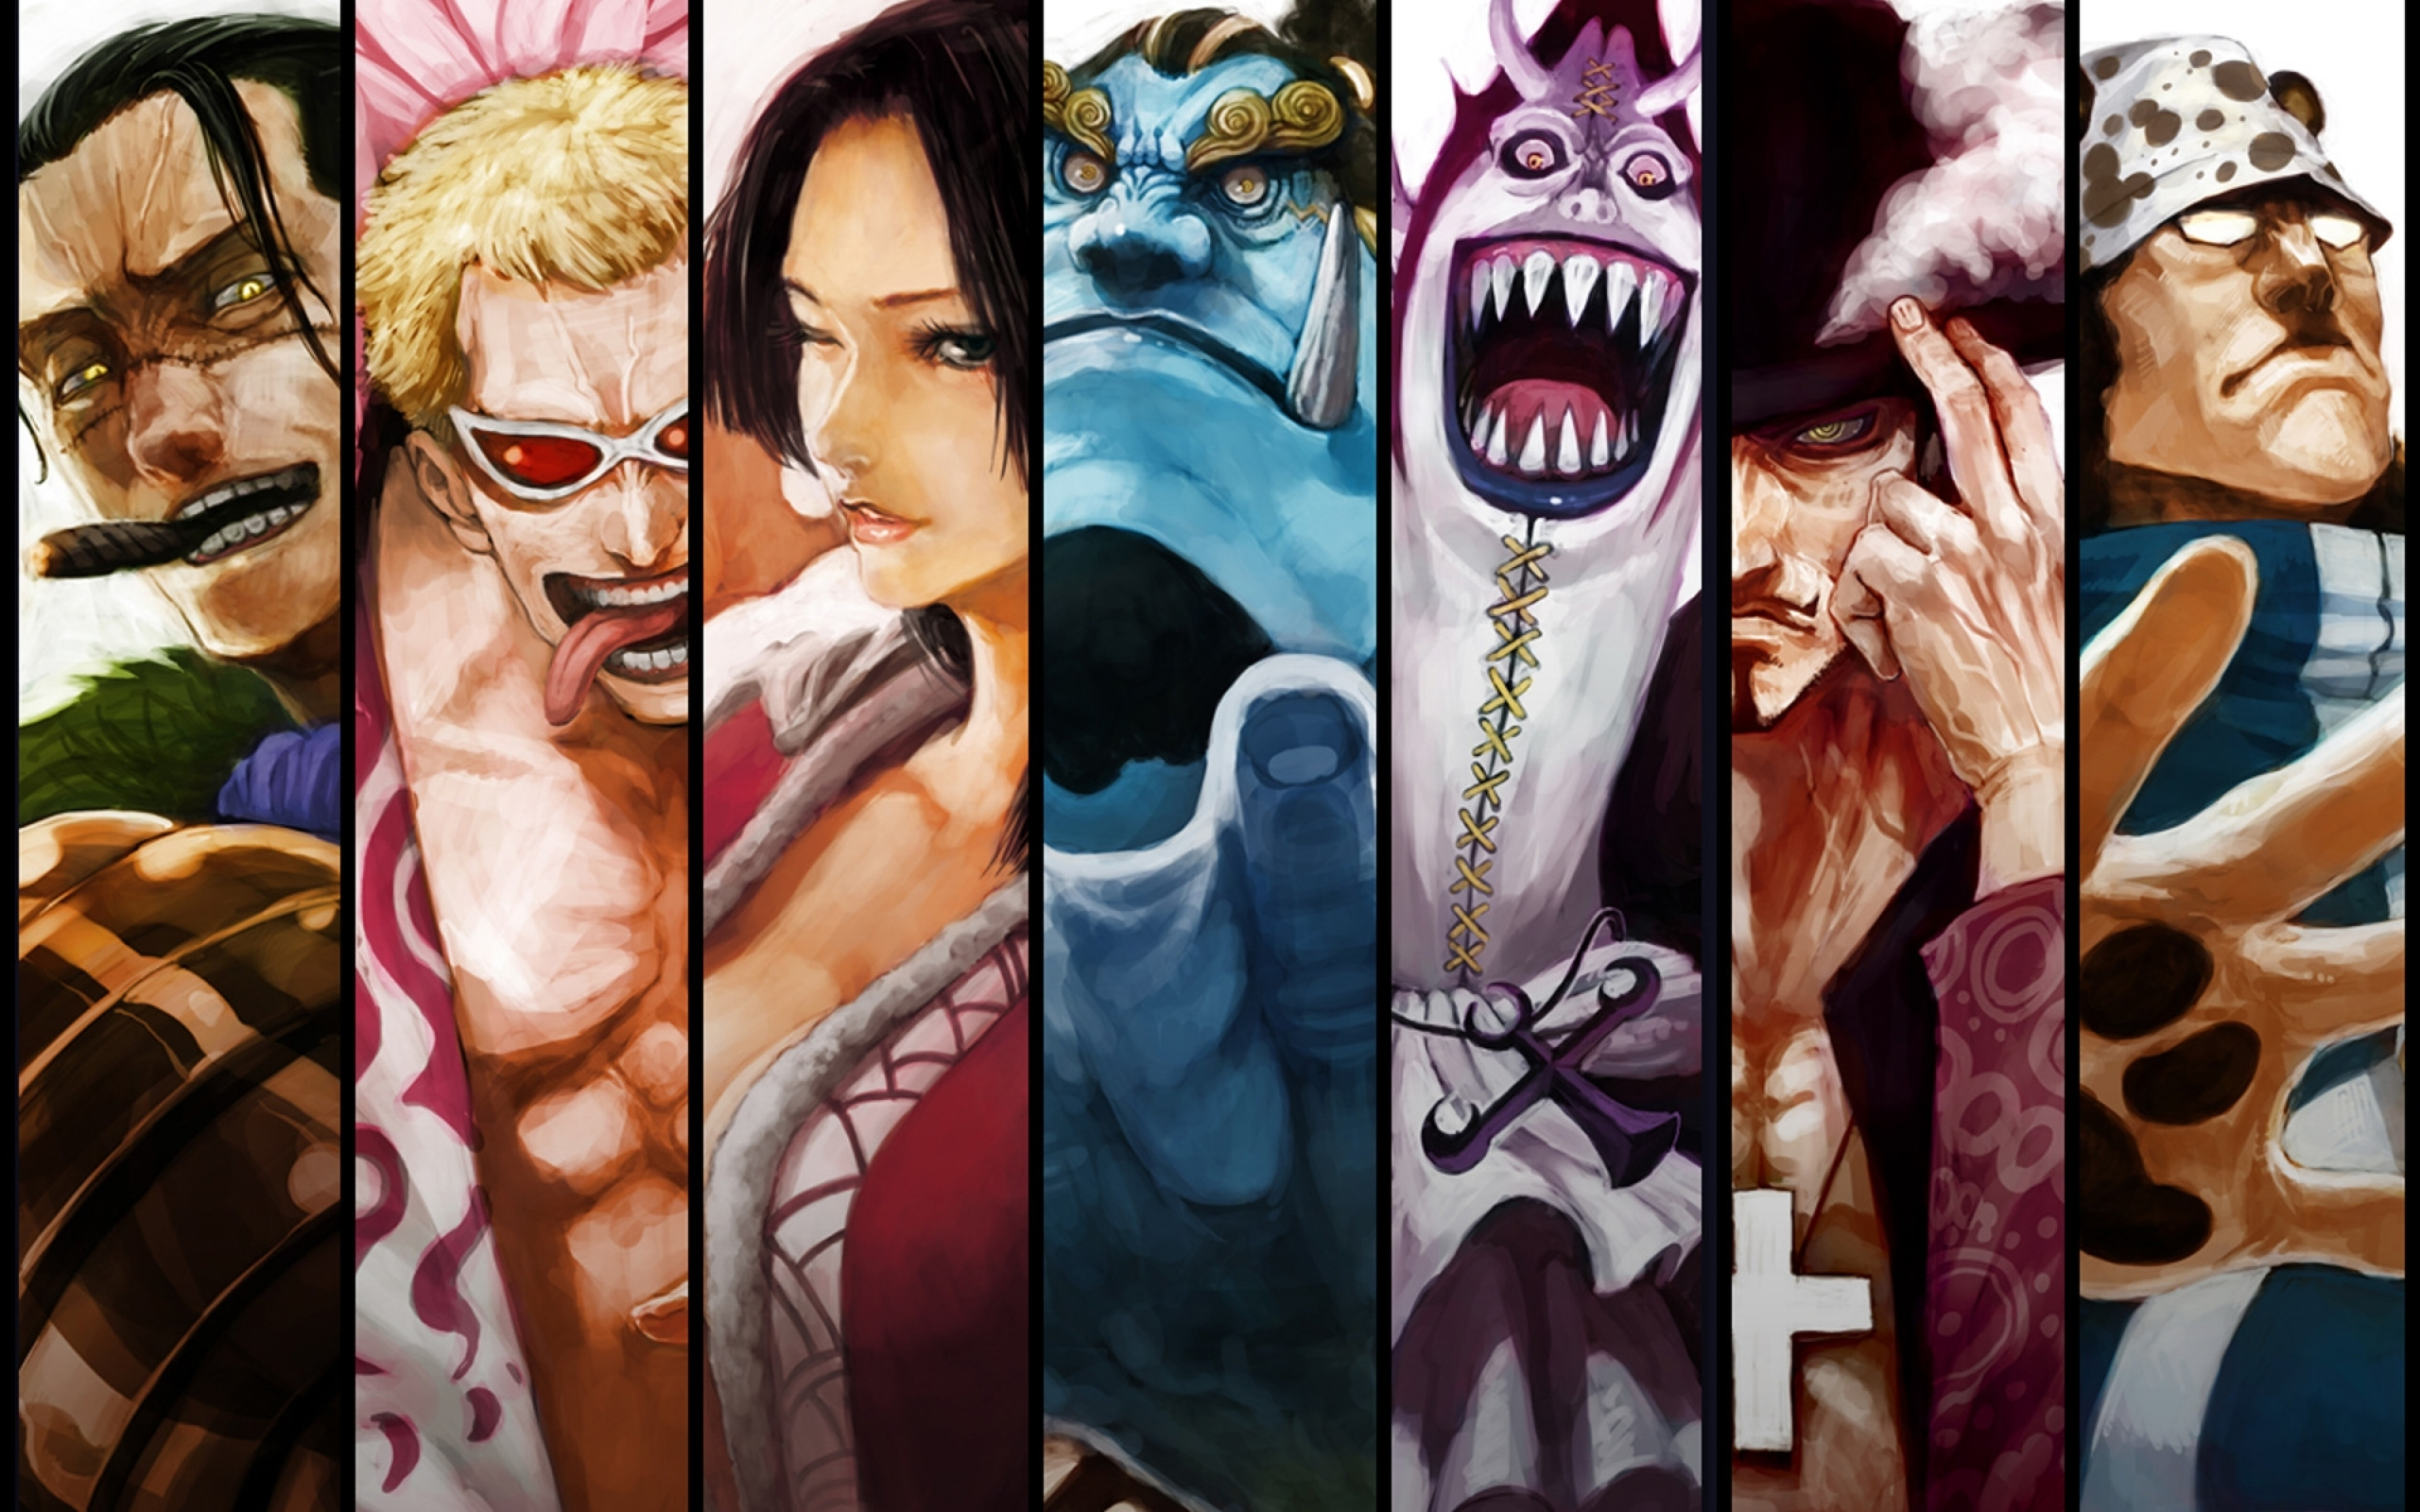 one piece Luffy Zorro mihawk shichibukai portgas fire fist ace, monkey D.Luffy Nami, Tony Tony Chopper, Nico Robin, Roronoa Zoro, Monkey D. Luffy, Sanji Usopp, Franky, Brook